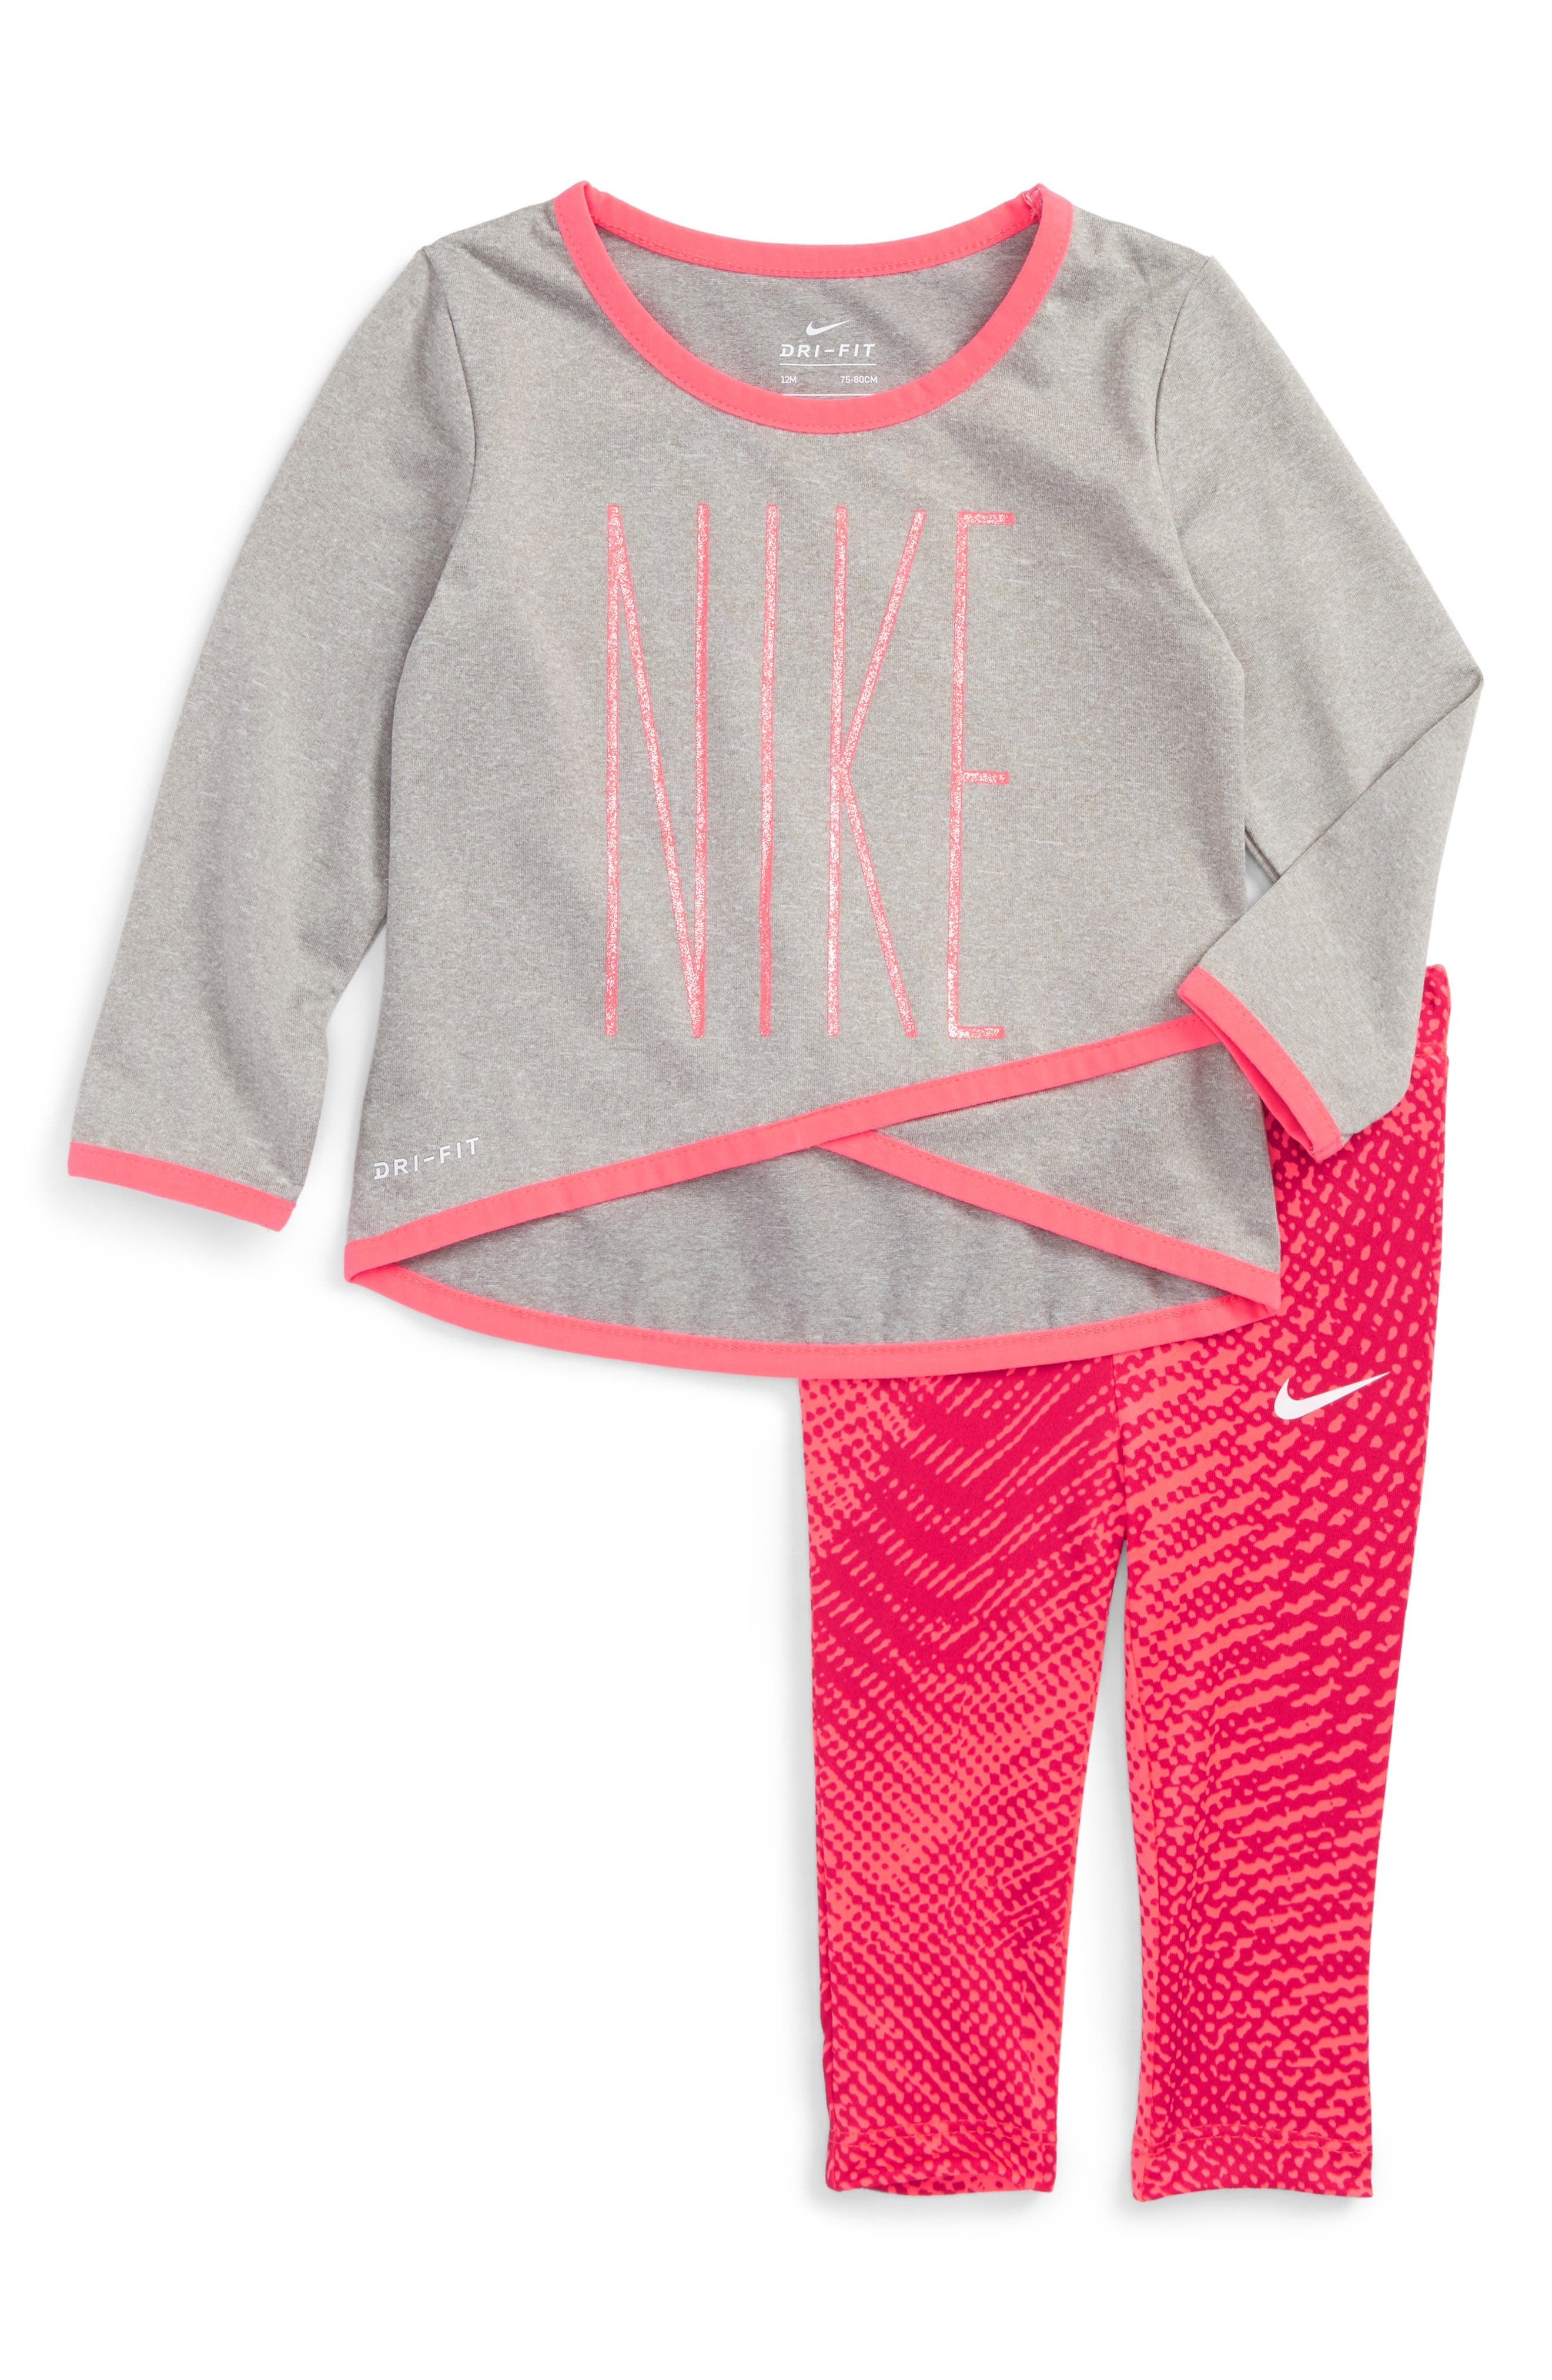 NIke Dri-FIT Graphic Tee & Print Leggings Set (Baby Girls)